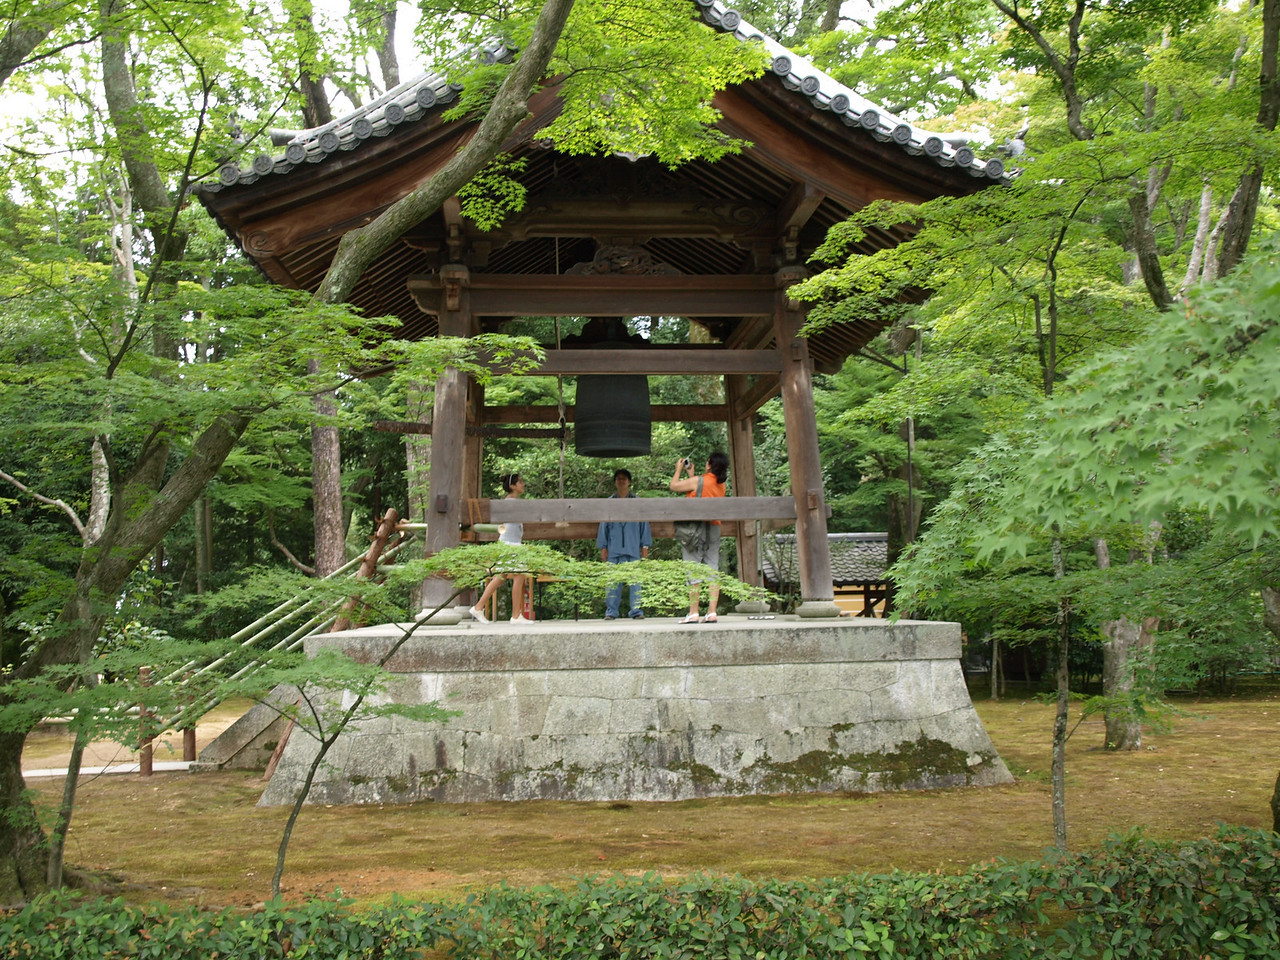 The land on which the Golden Pavilion is built was originally the property of Kintsune Saionji, a prominent figure in the Japanese Imperial Court. At that time, this bell was owned by the Saionji family dating back to the 1200s.